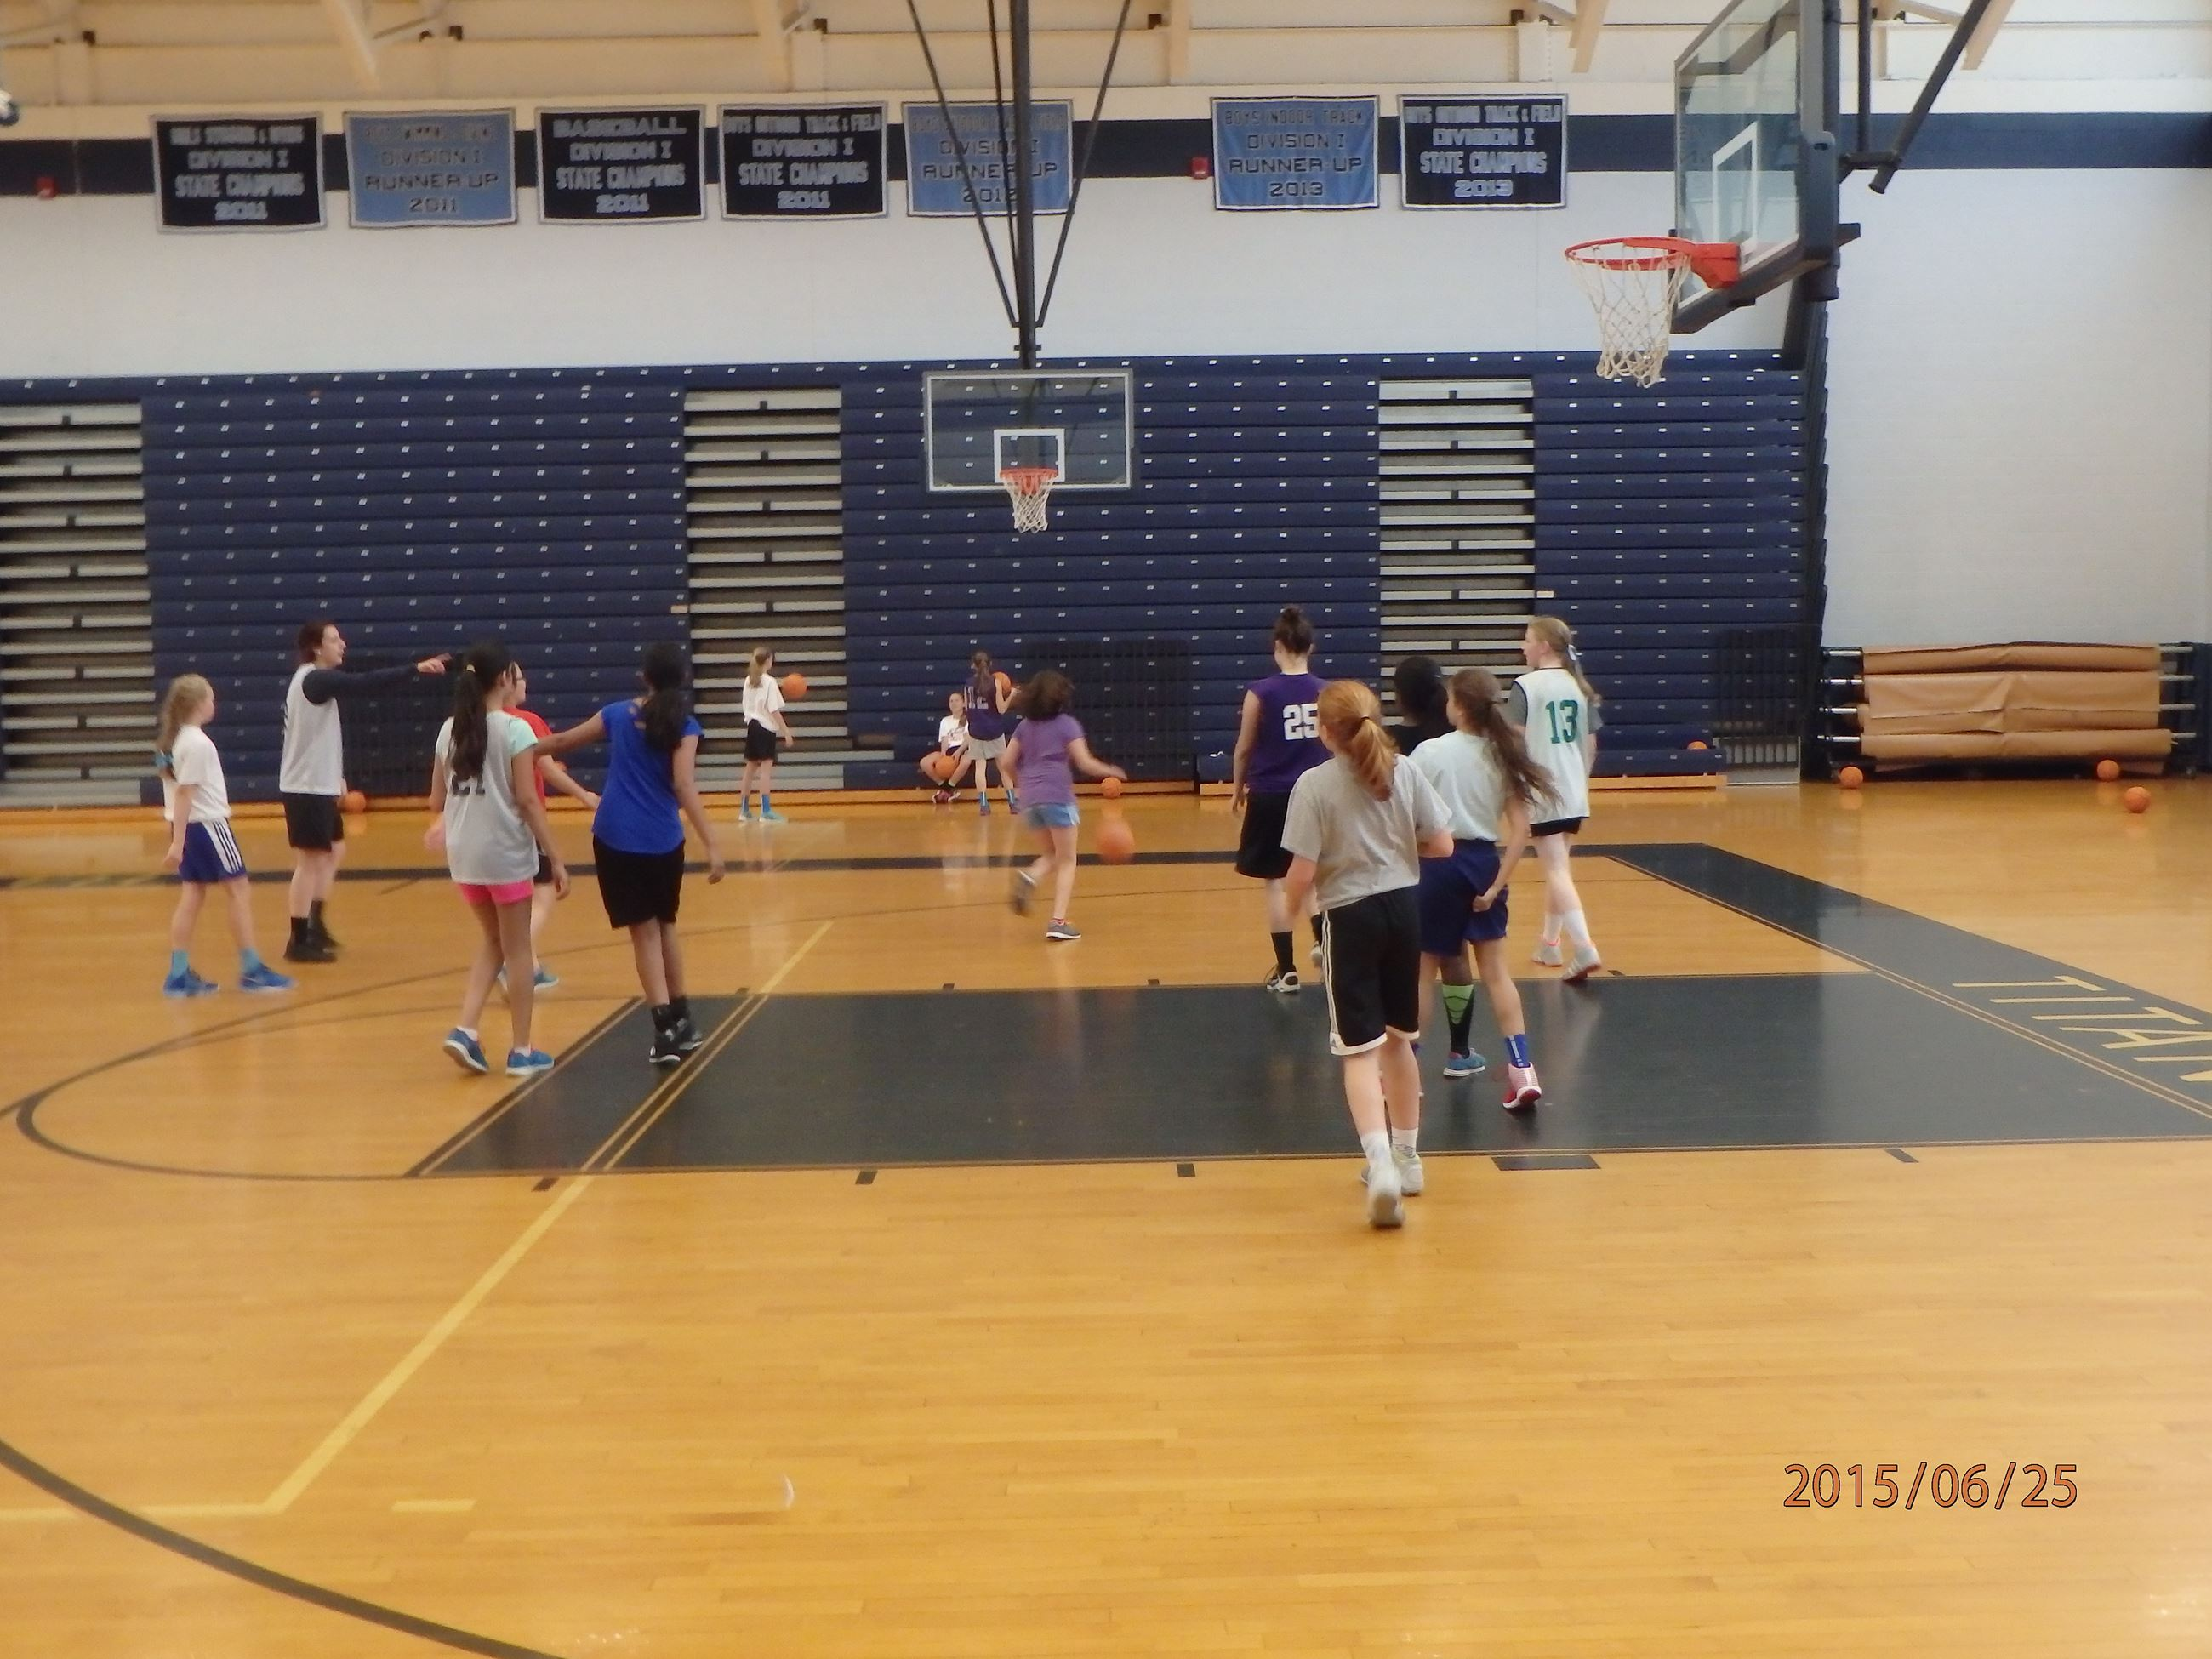 Girls gathered in a gym for basketball camp.